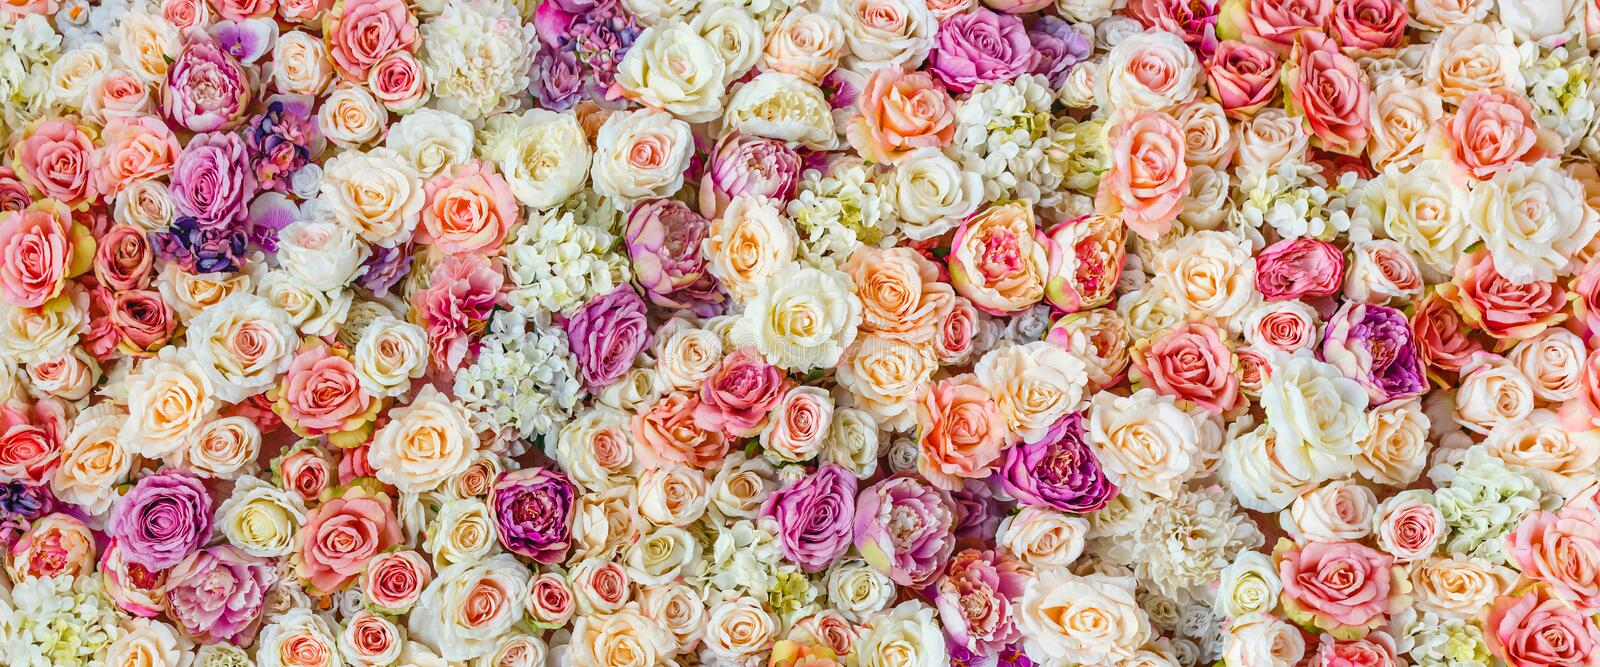 Flowers wall background with amazing red and white roses, Wedding decoration,. Hand made royalty free stock image